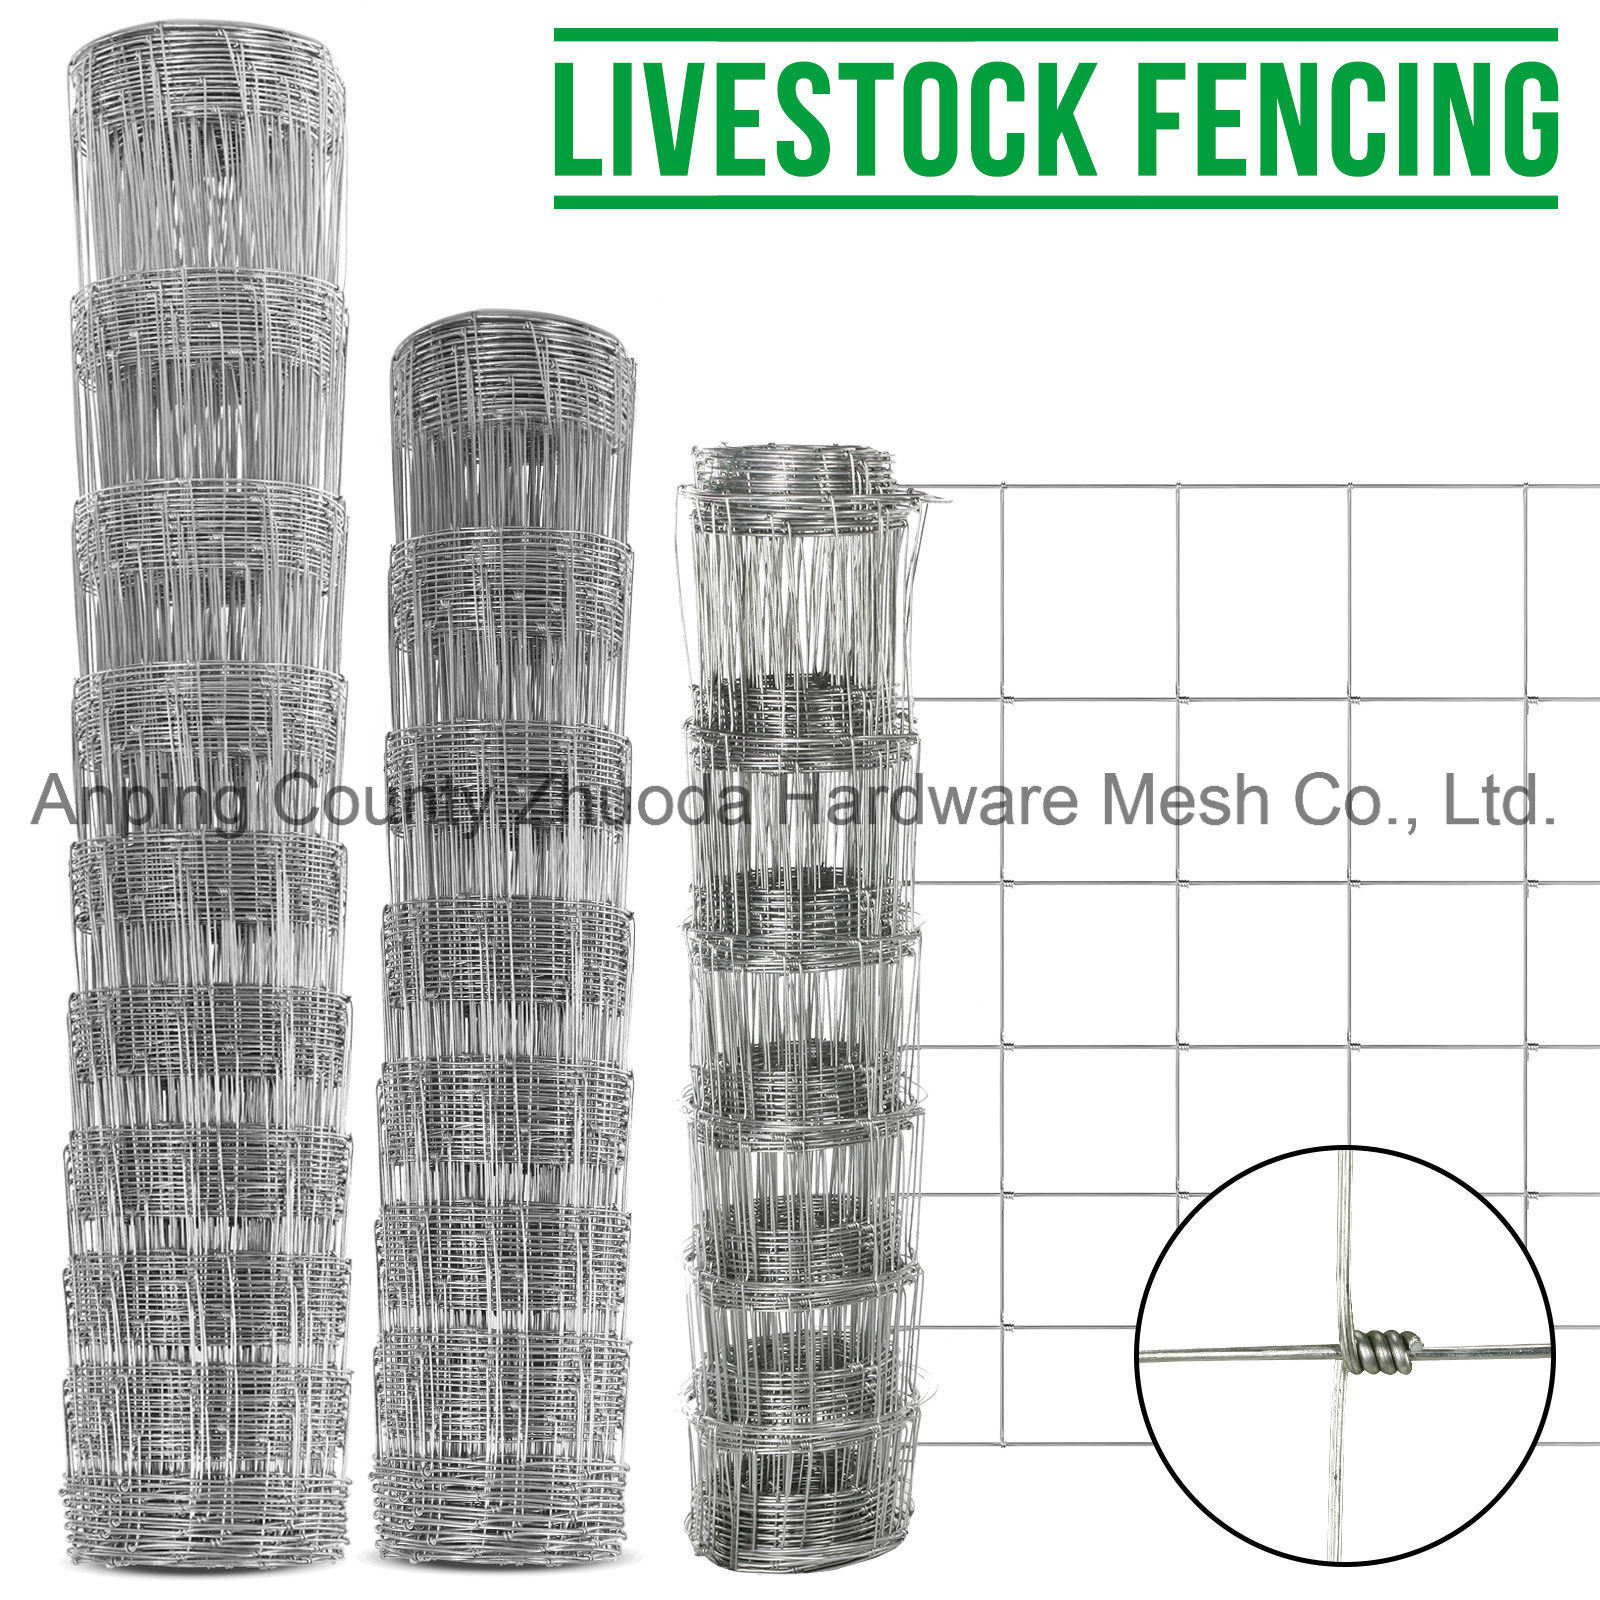 China 25m 50m Stock Fencing Sheep Pig Cattle Livestock Fence ...